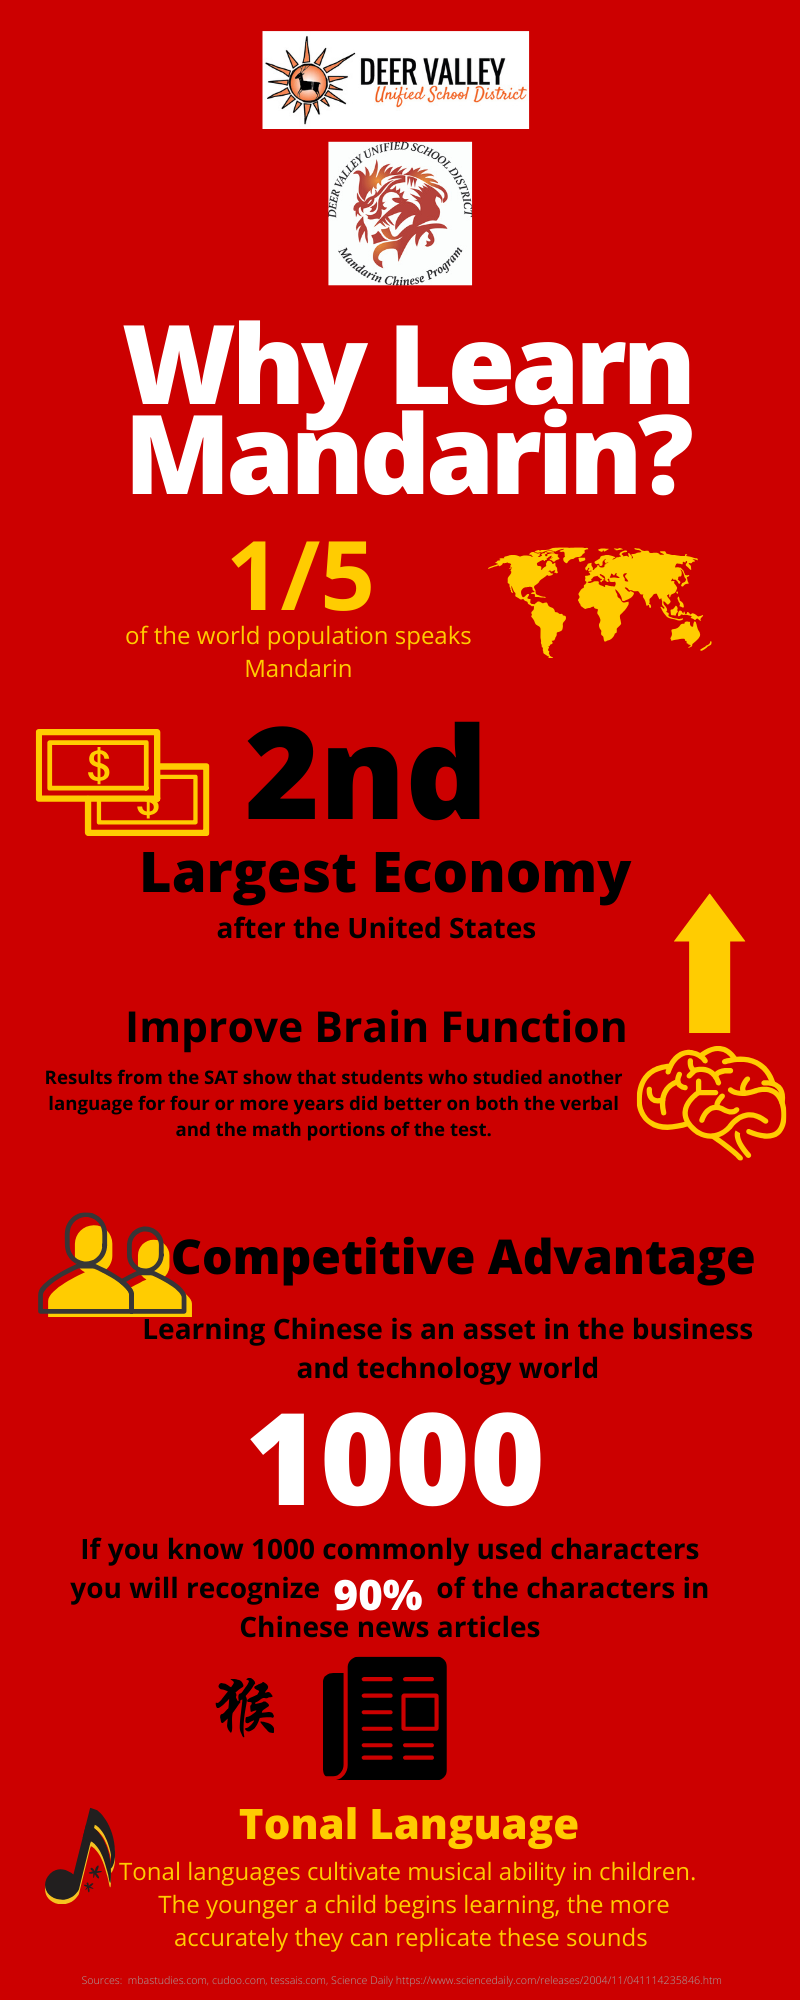 Why Learn Mandarin infographic